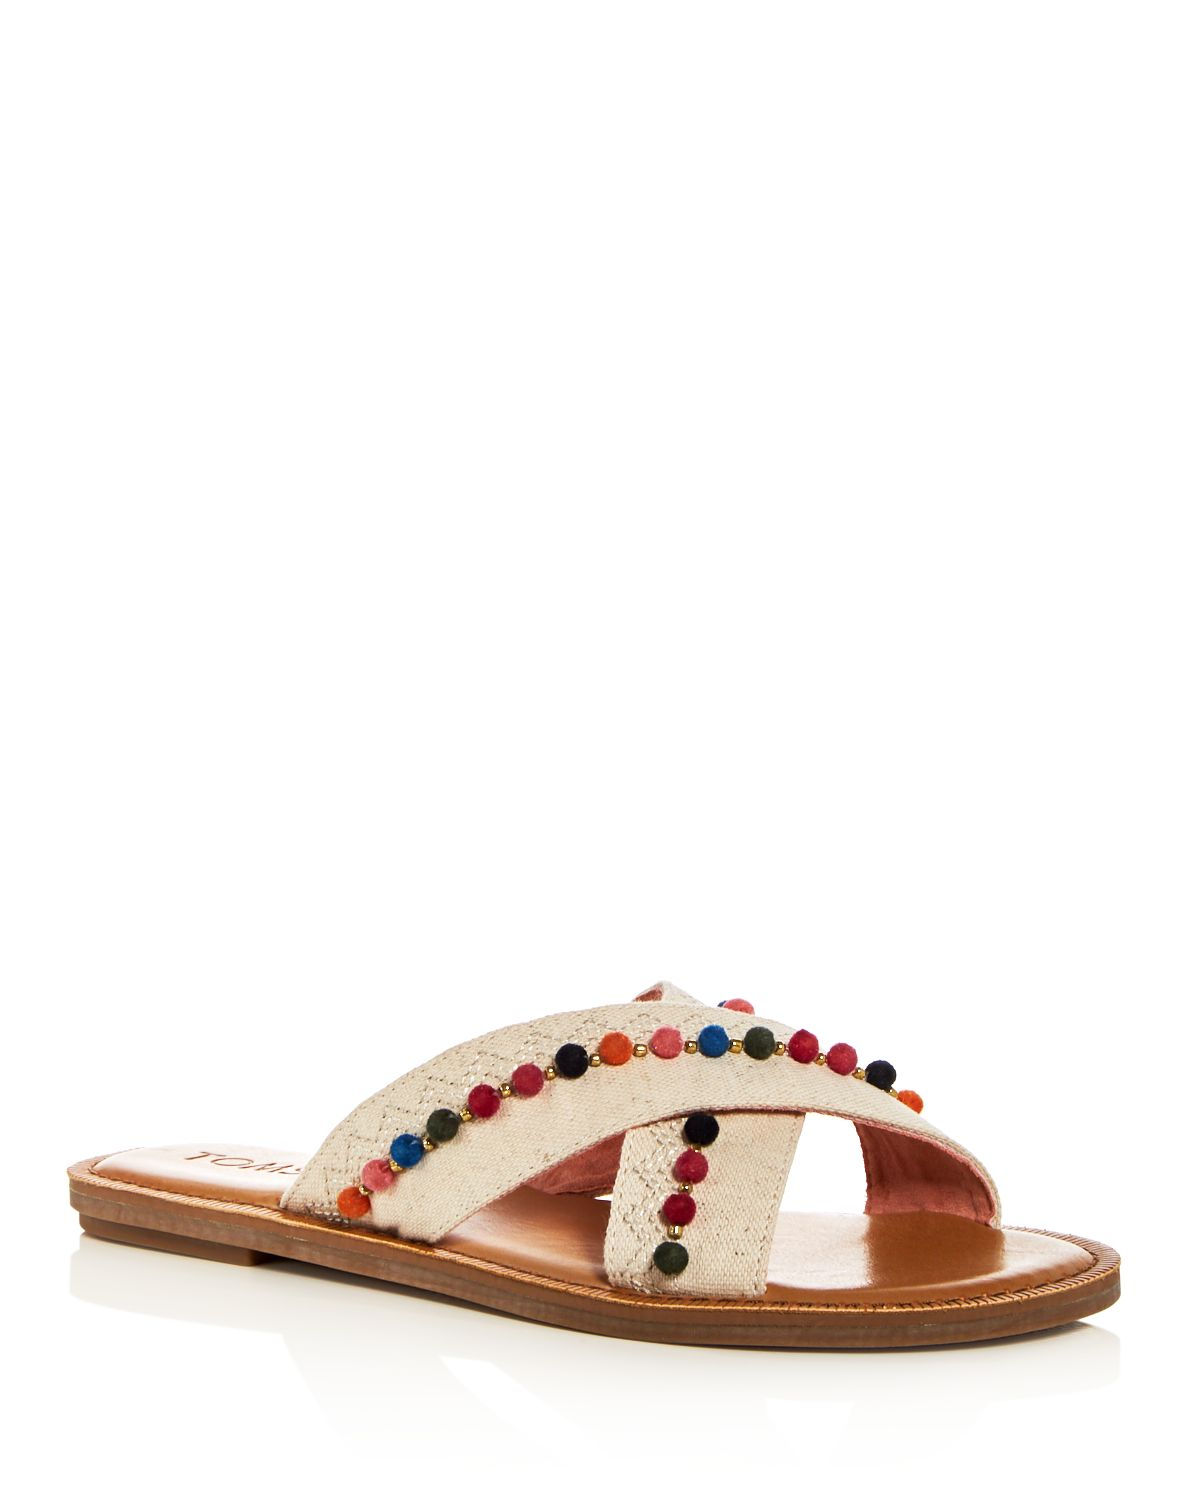 TOMS Women's Viv Hemp & Leather Crisscross Slide Sandals